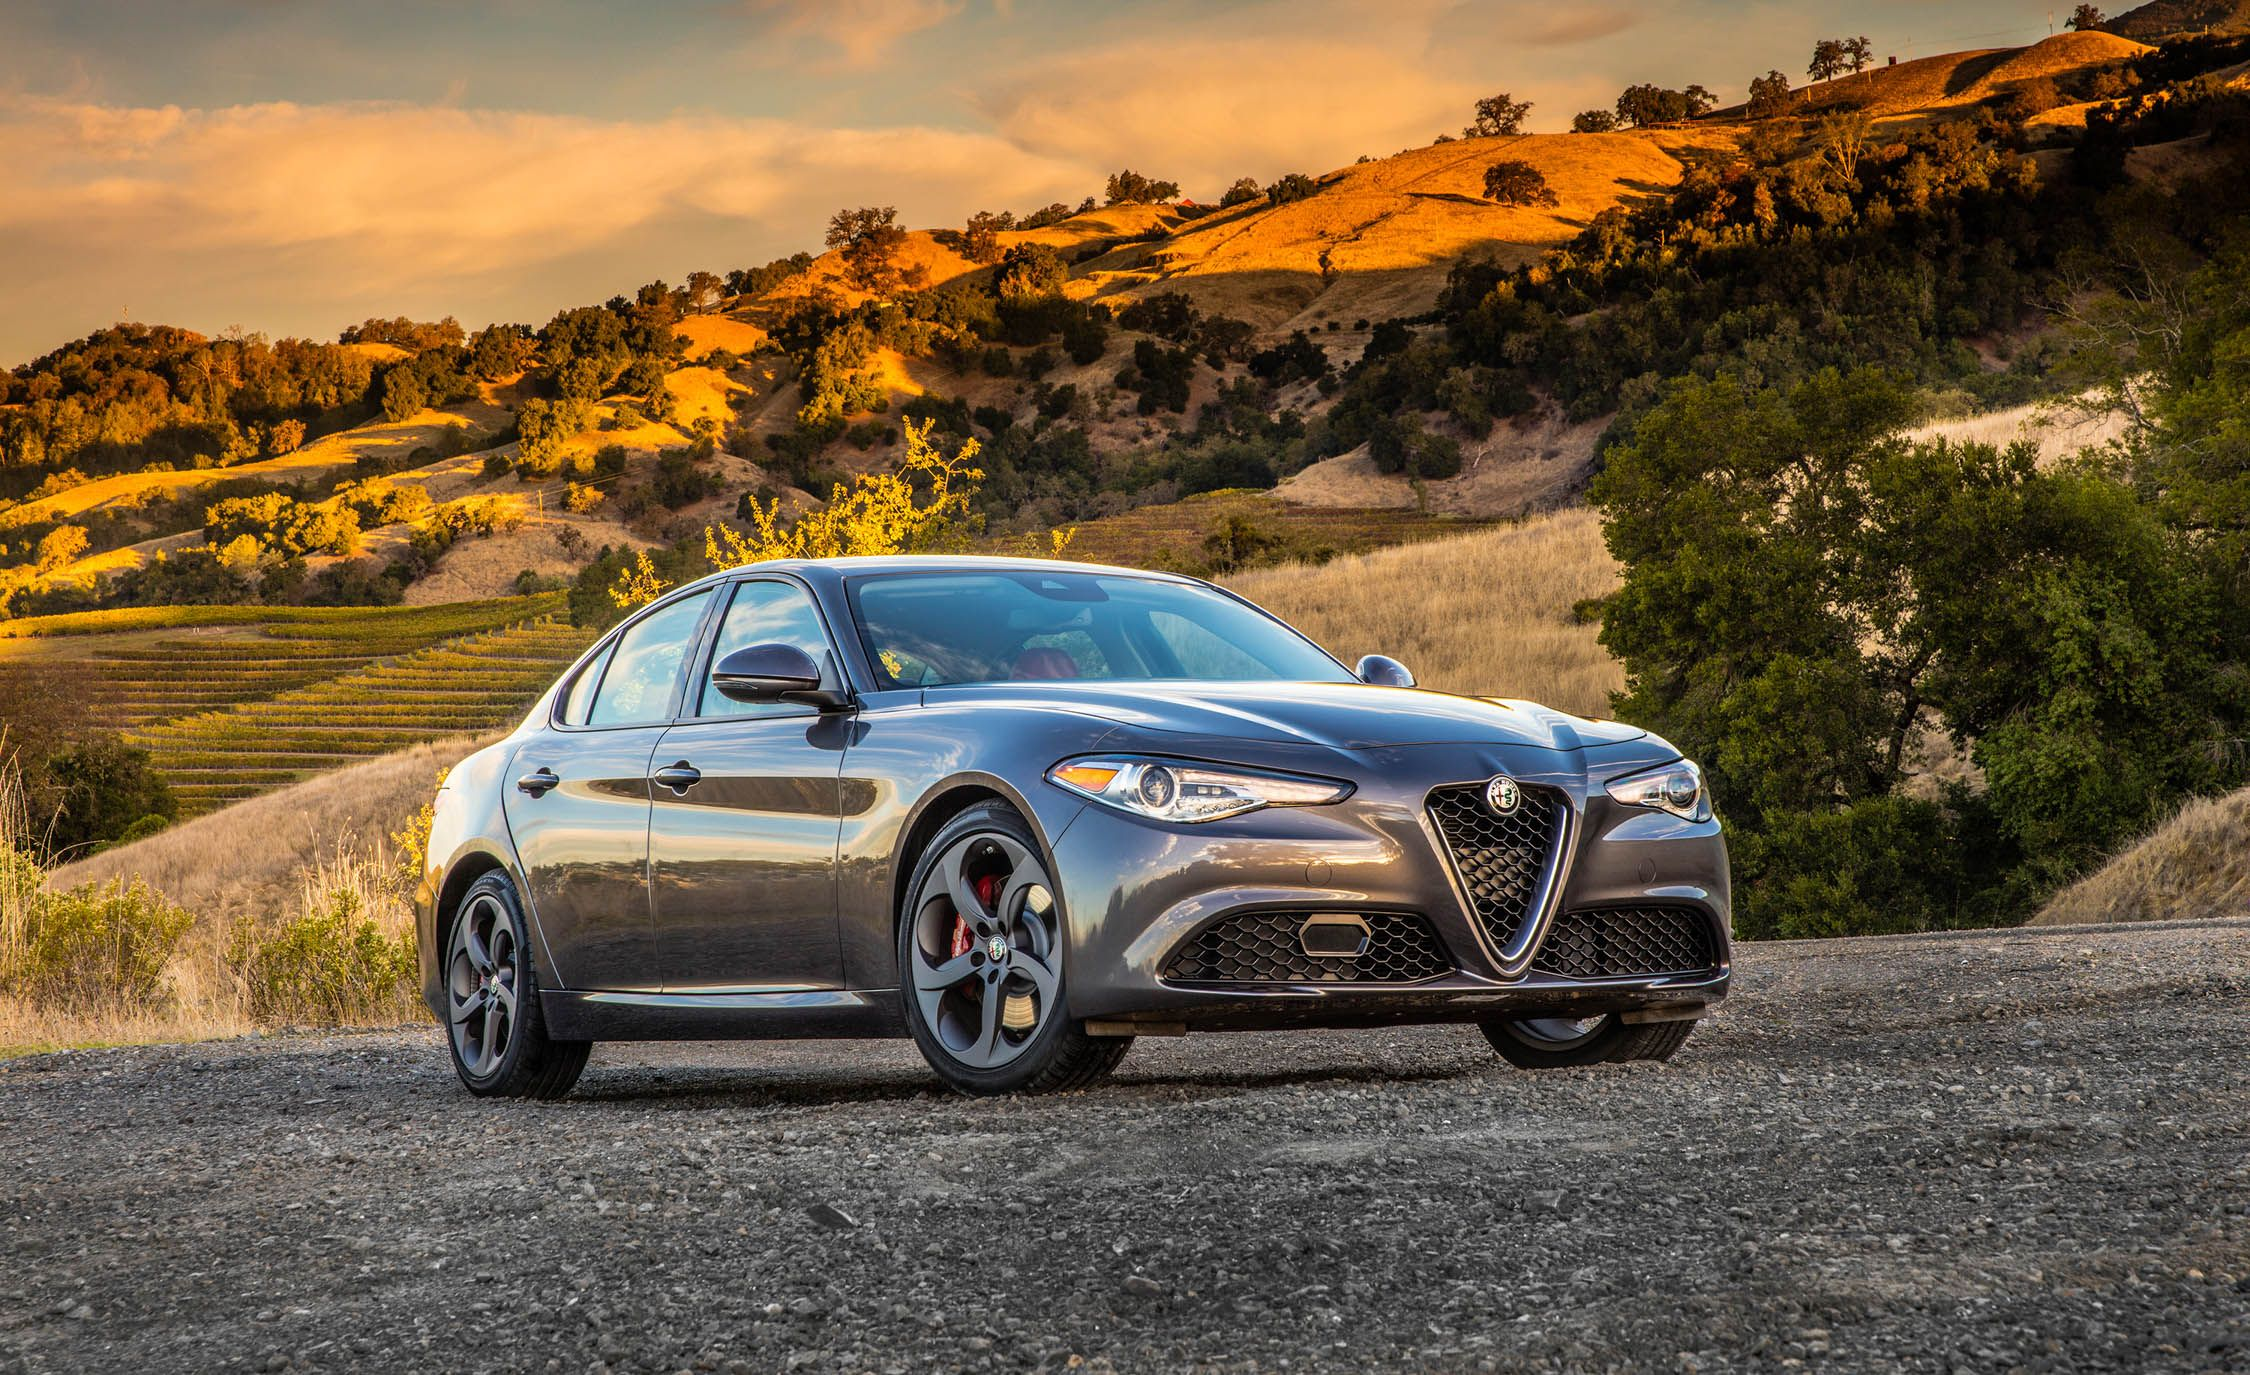 Charming The 15 Most Beautiful Cars Under $50K That You Can Buy Right Now   Flipbook    Car And Driver